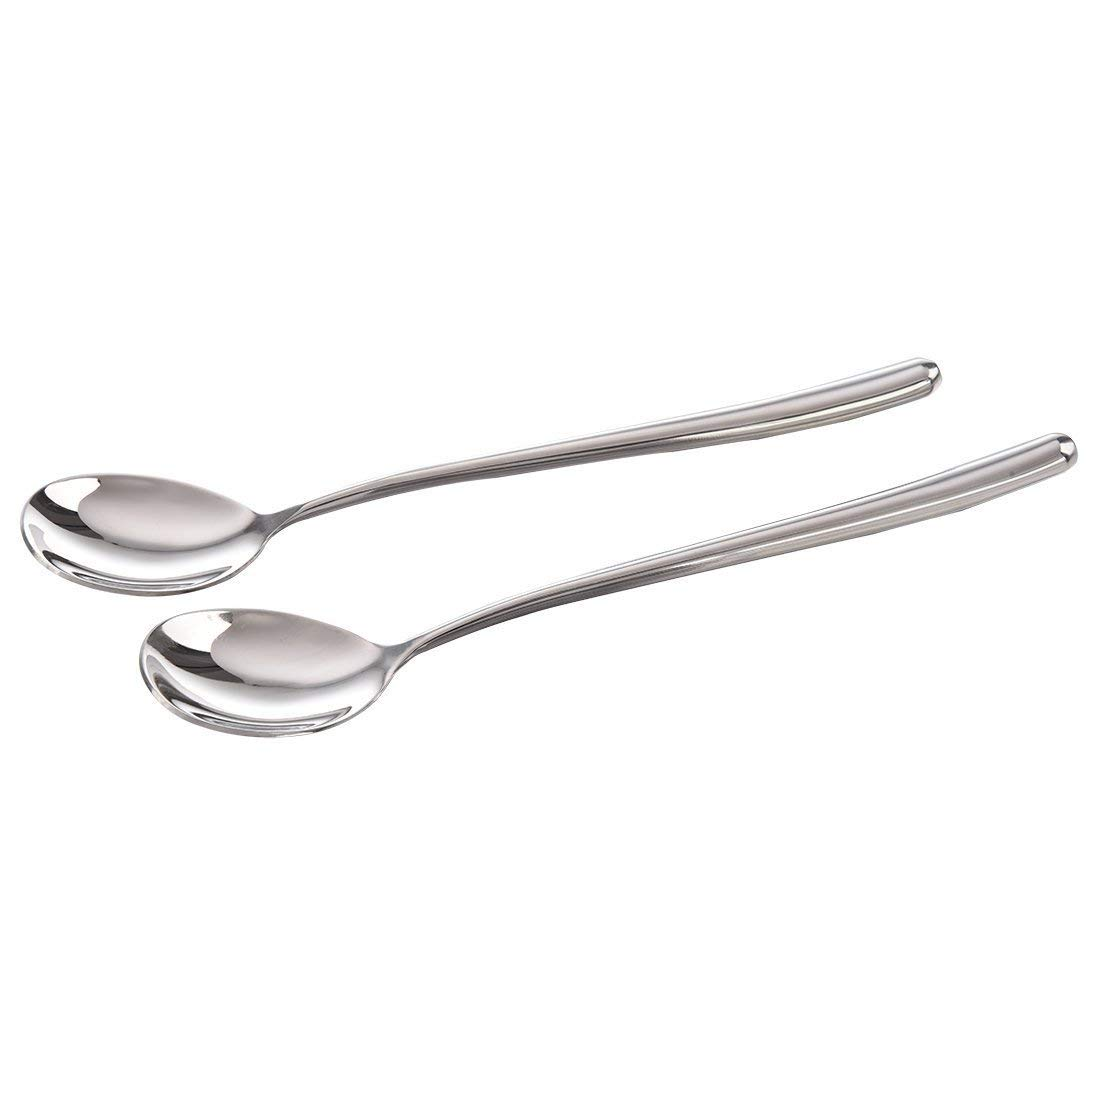 TOOGOO(R) Good Quality Stainless Steel Rice Spoon/Soup Spoon , Long-handled Great Circle Coffee Spoon (2pcs)